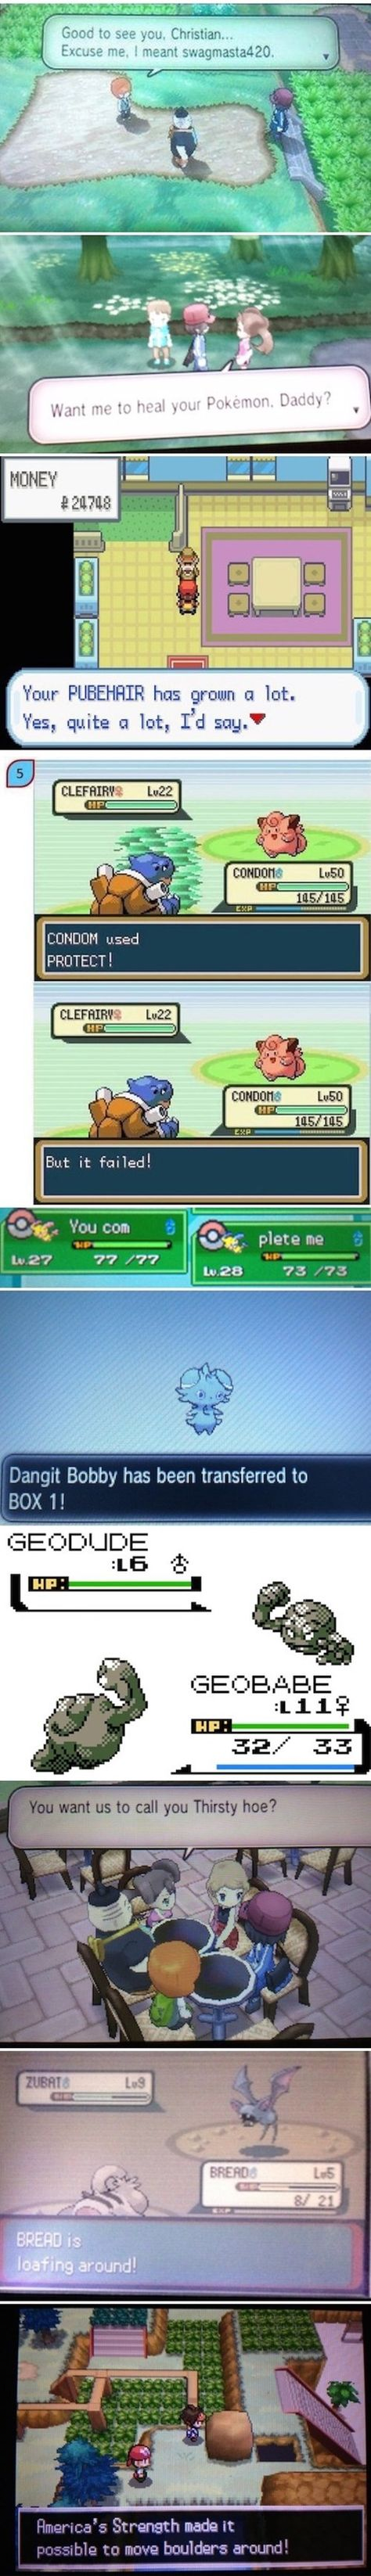 Playing With Names in Pokémon lol